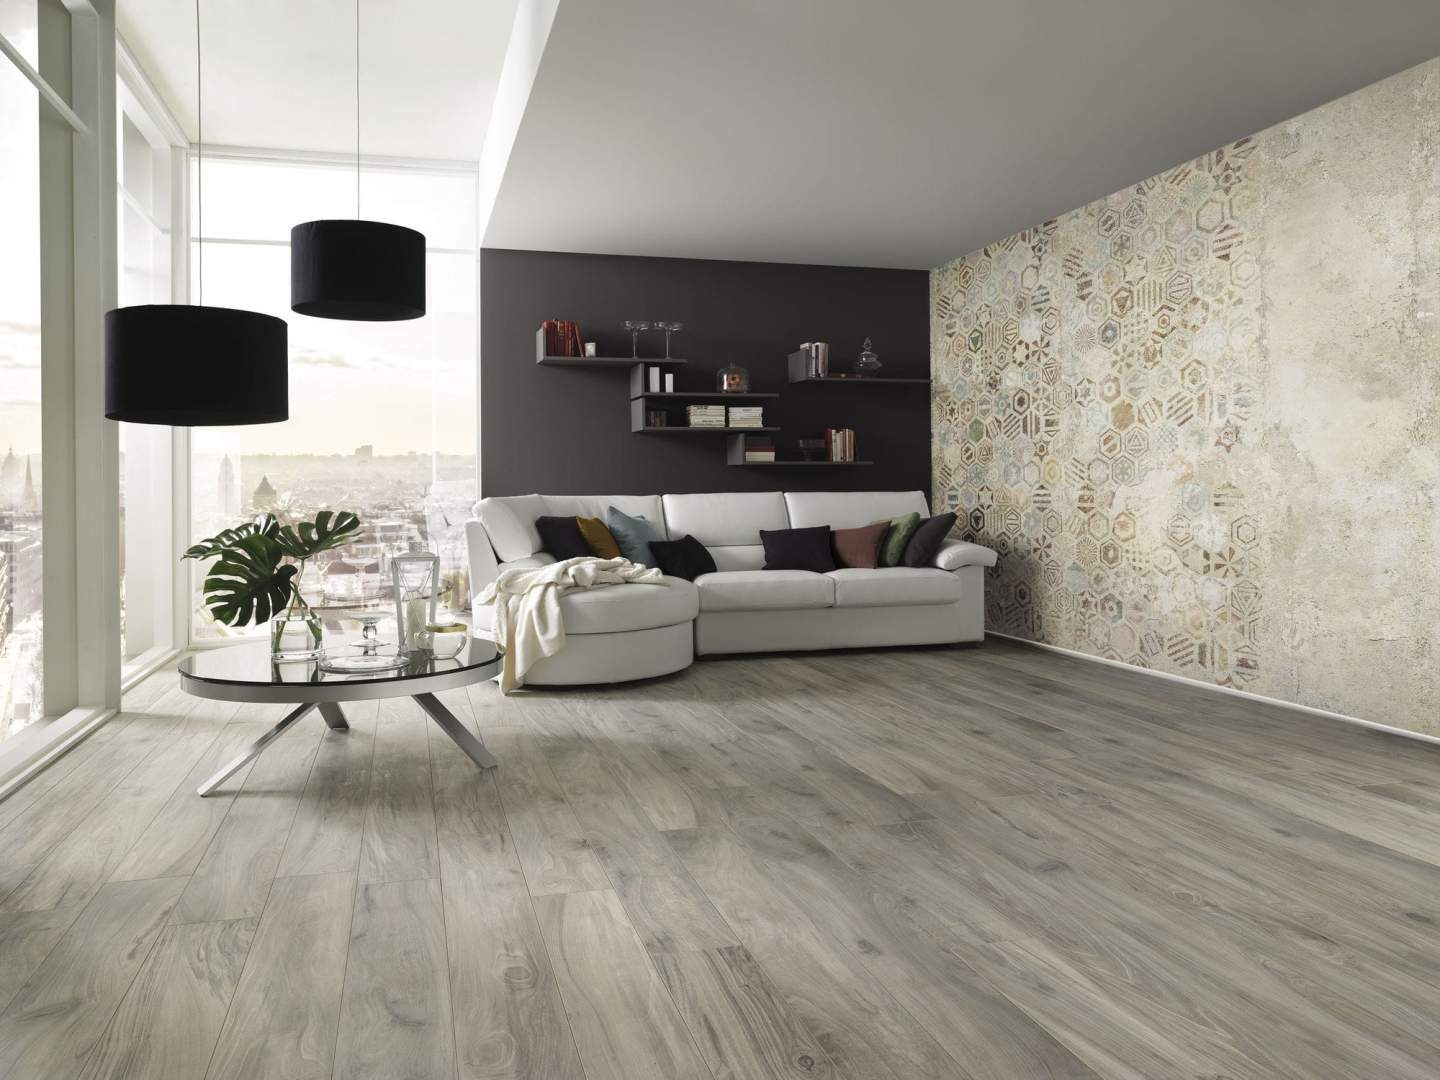 Luxurious Large Plank Wood effect Tiles